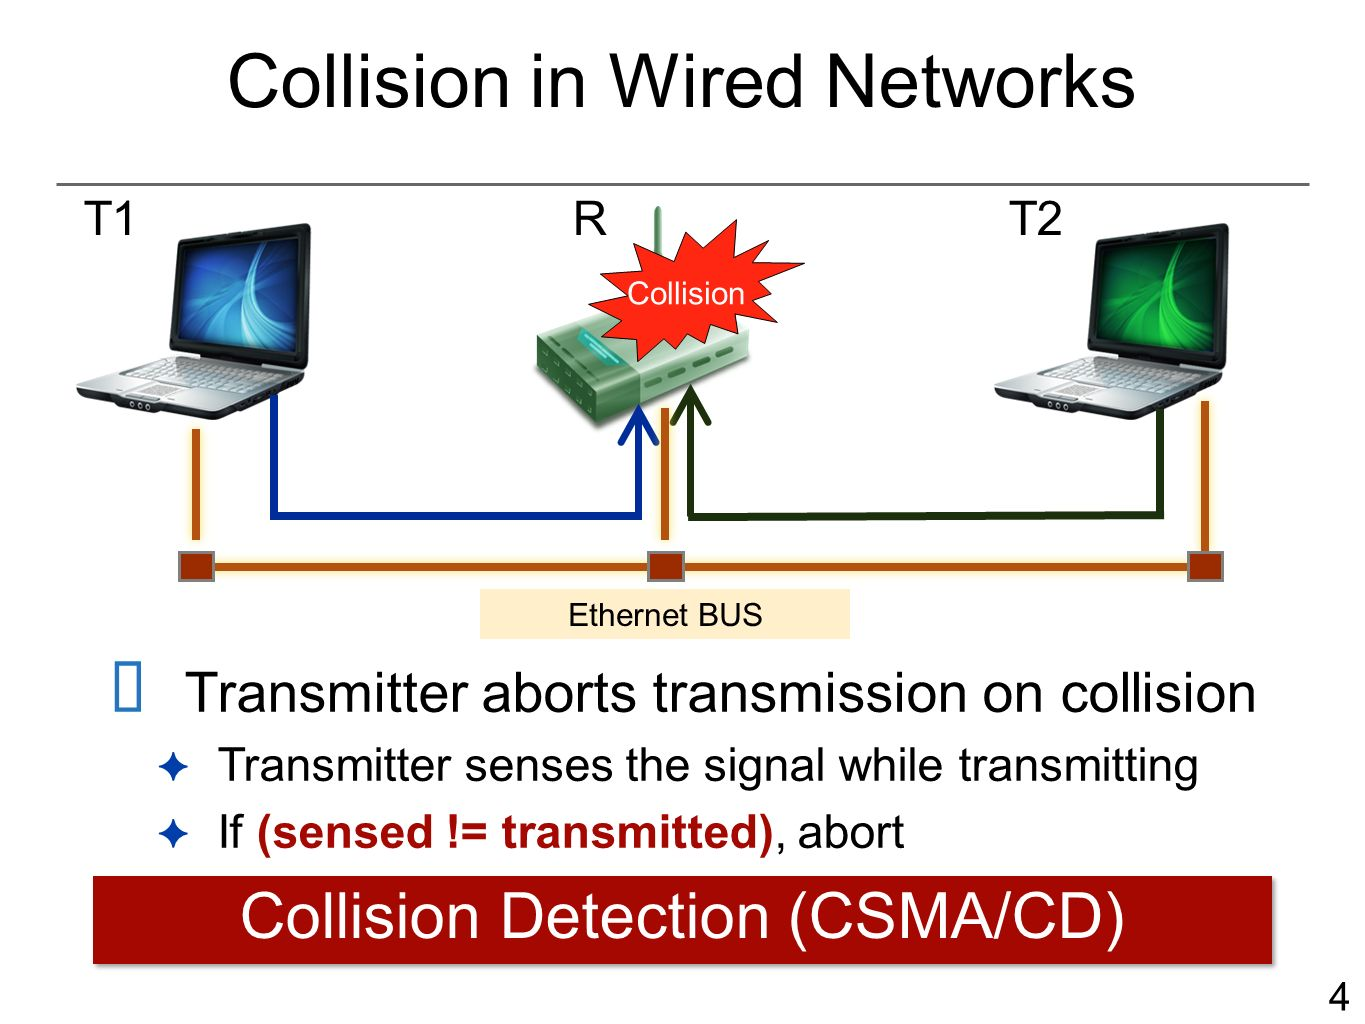 4 Collision in Wired Networks Transmitter aborts transmission on collision Transmitter senses the signal while transmitting If (sensed != transmitted), abort T1RT2 Collision Ethernet BUS Collision Detection (CSMA/CD)